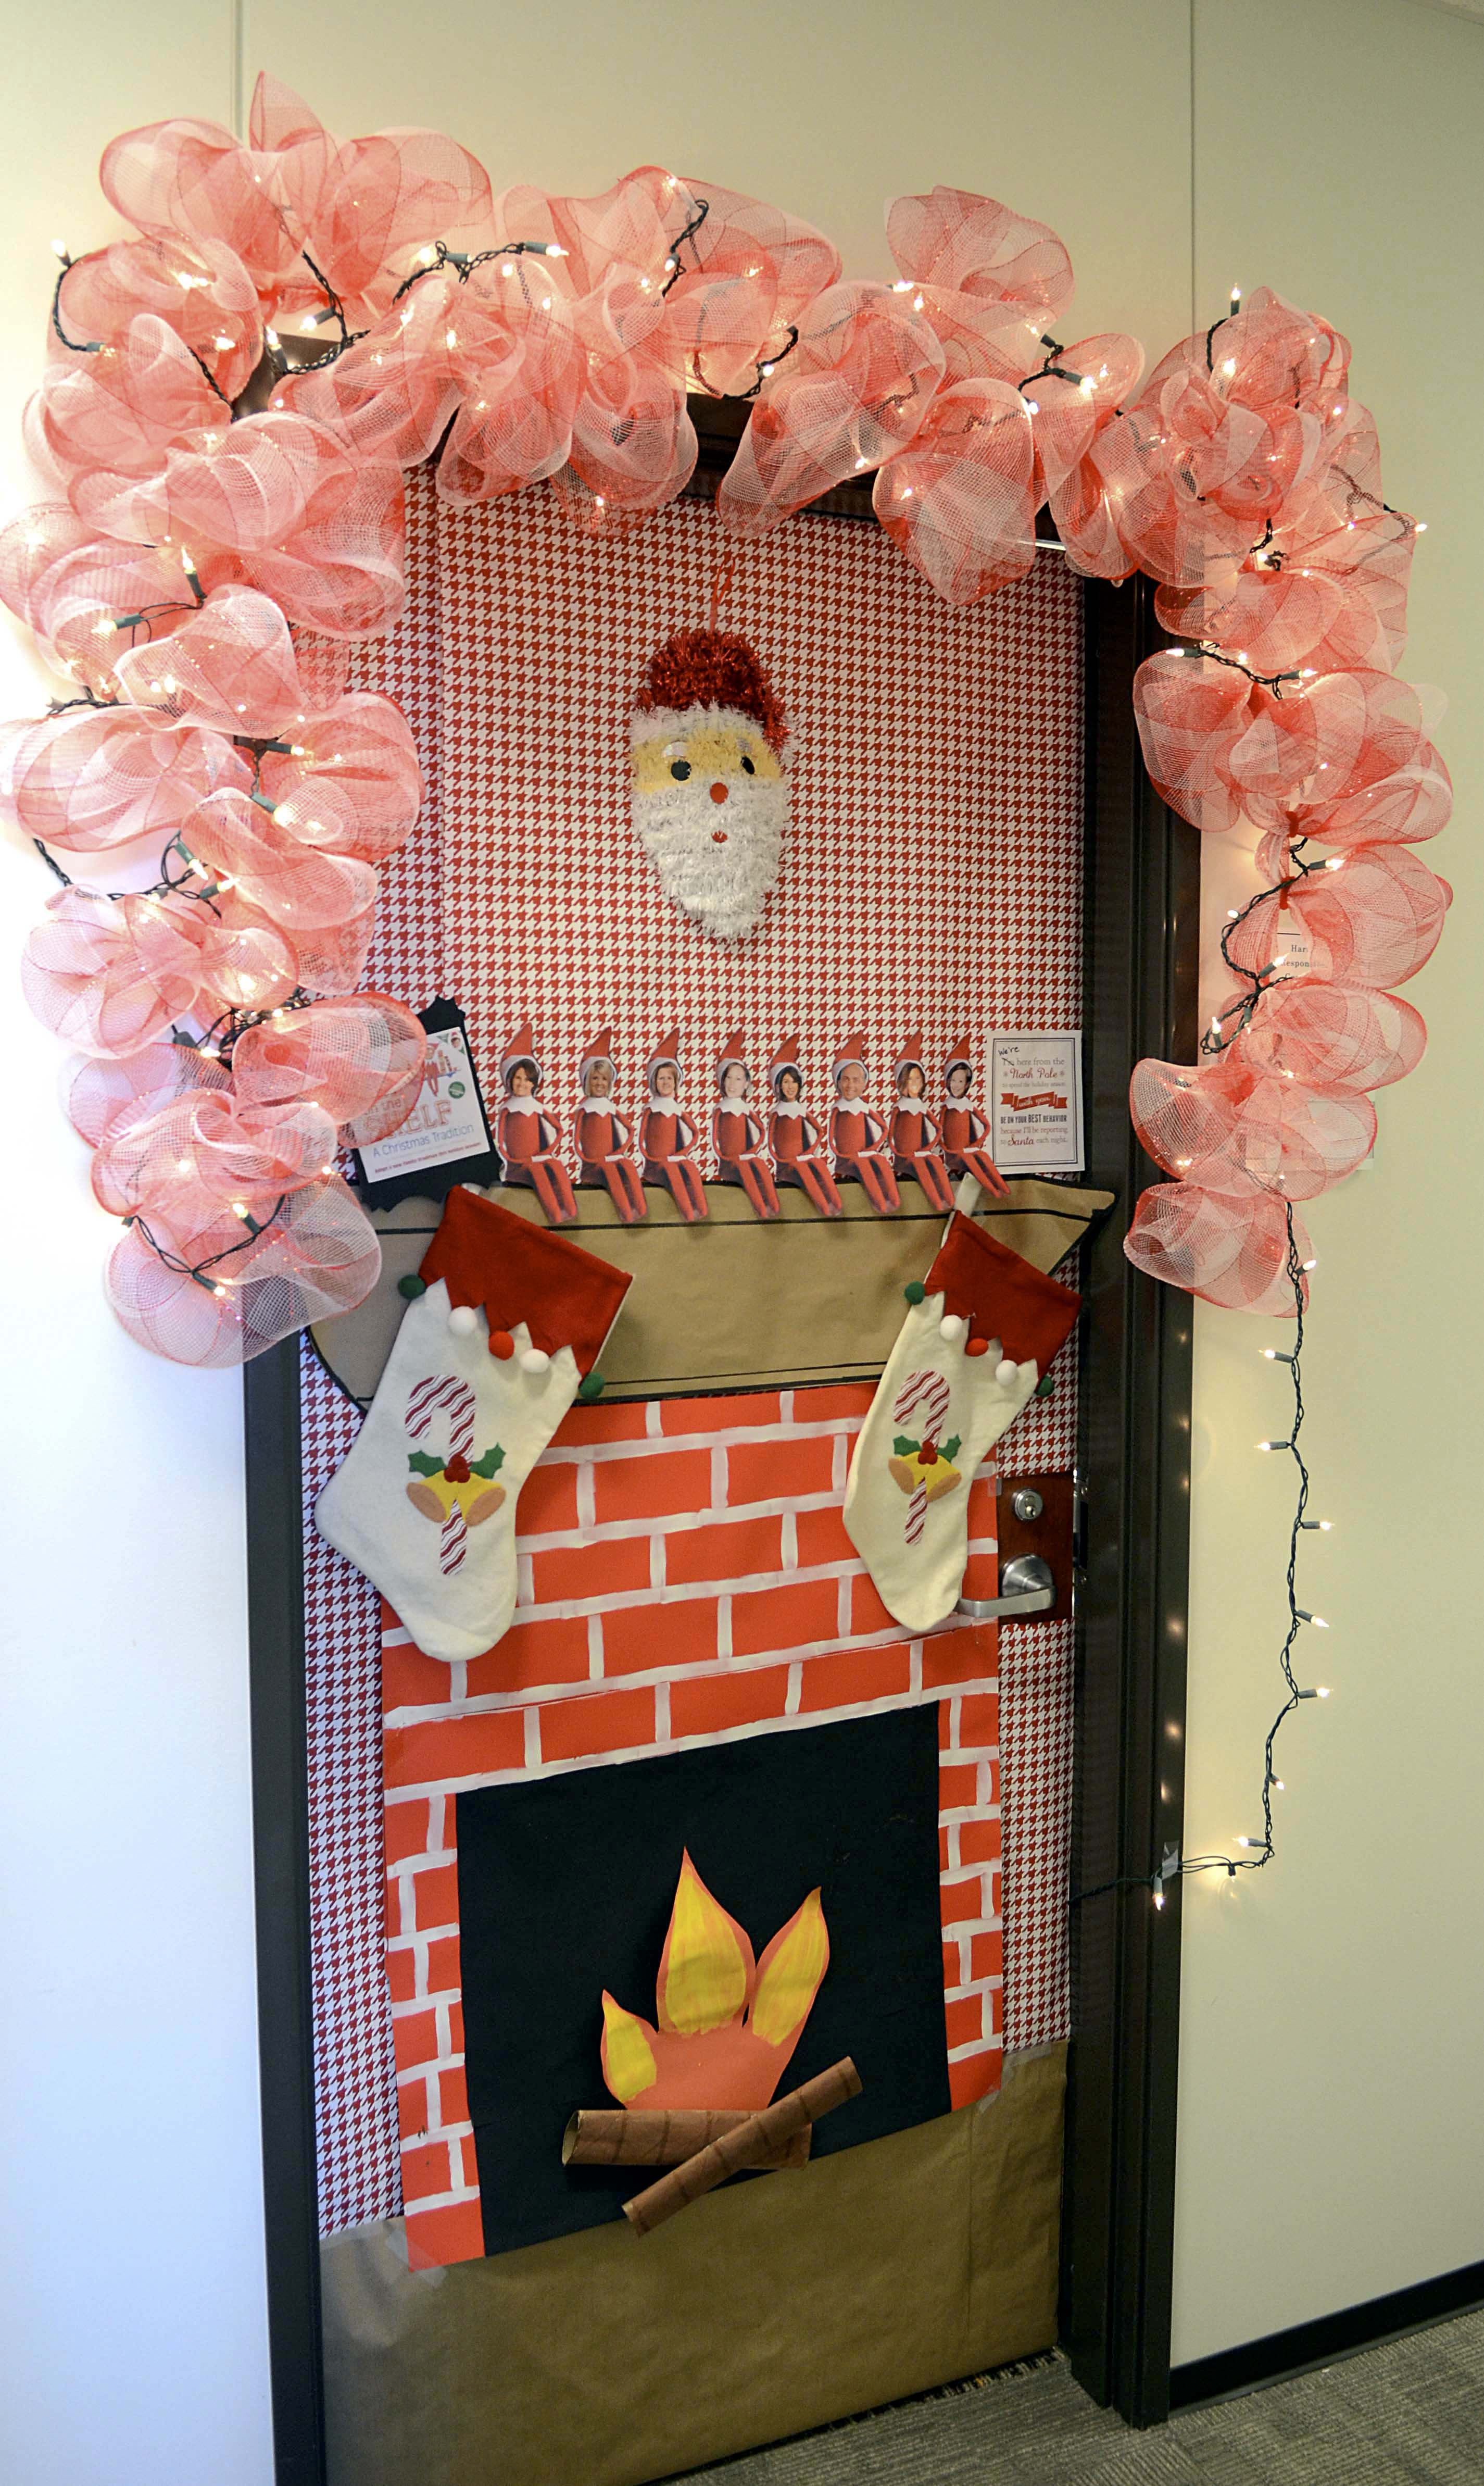 Door ornament Ideas Door Decoration Contest Sparks New Tti Tradition — Texas A